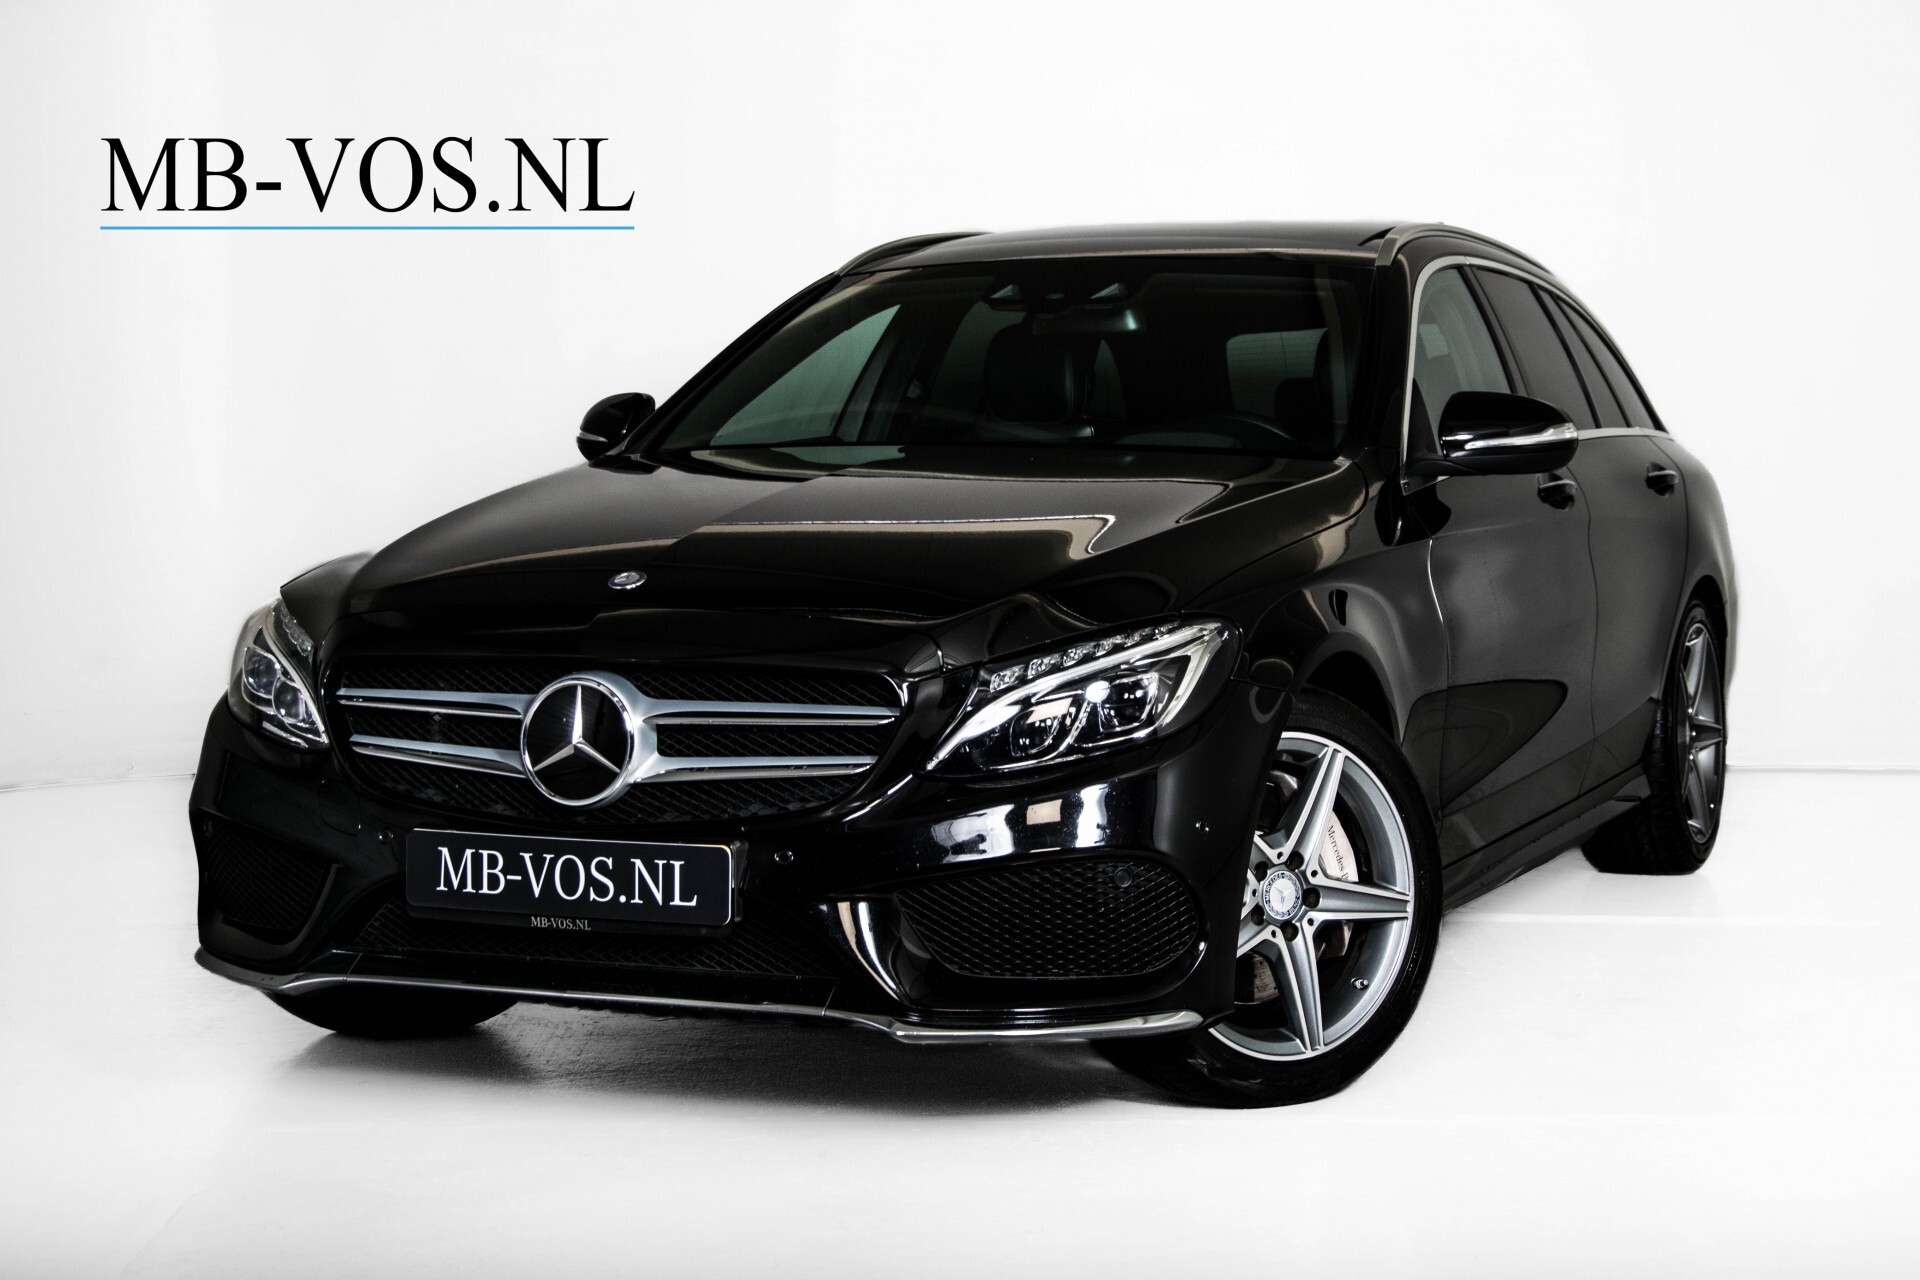 Mercedes-Benz C-Klasse Estate 250 Bluetec AMG Distronic/Pano/Keyless/Head-Up/Burmester/Comand Aut7 Foto 1